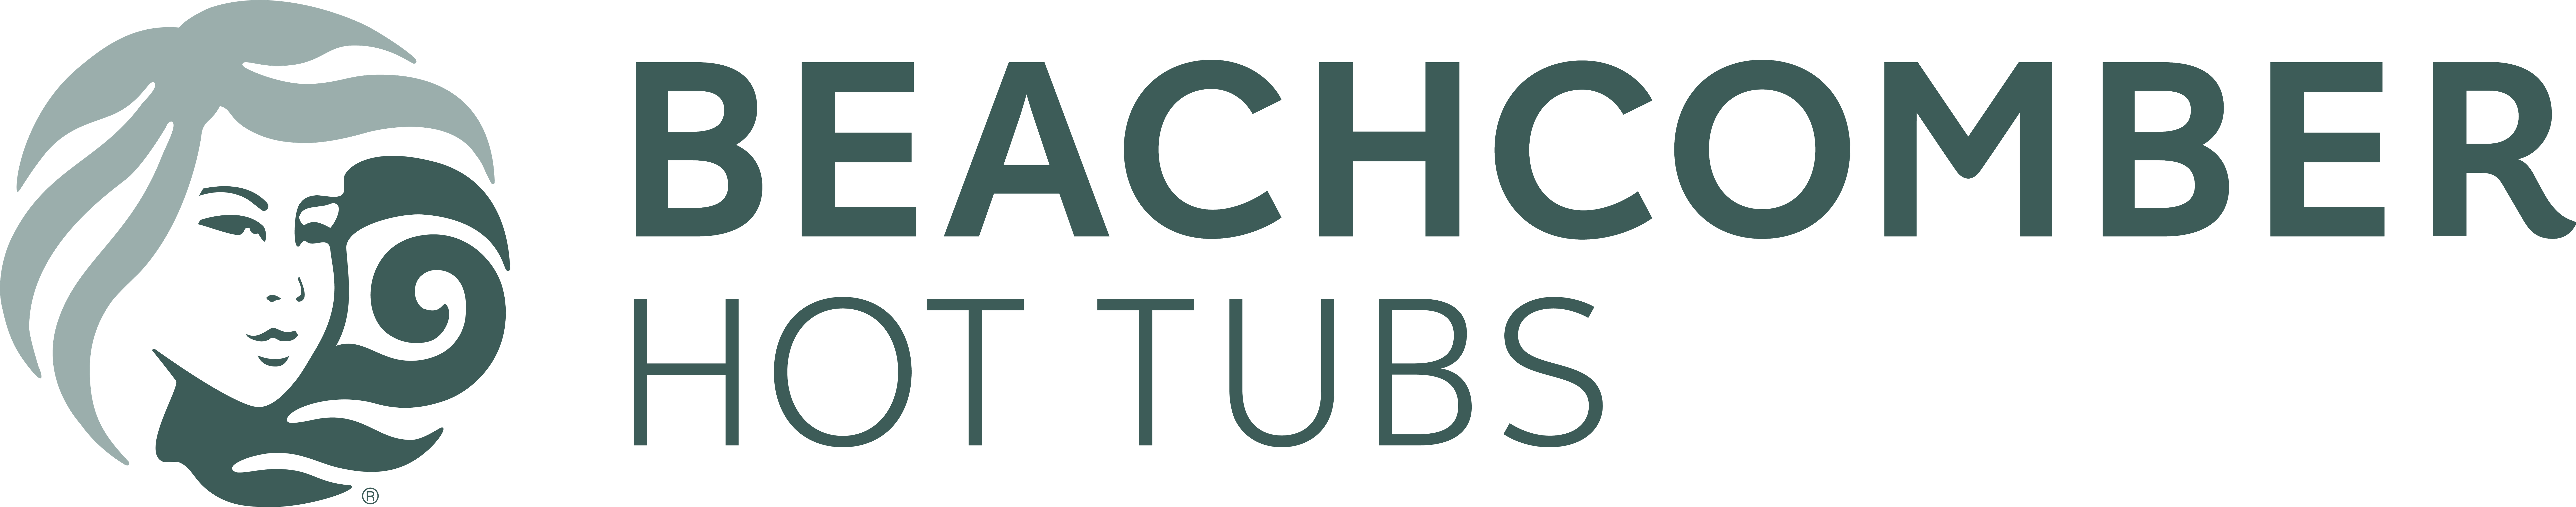 Beachcomber Hot Tub Dealer Opportunity